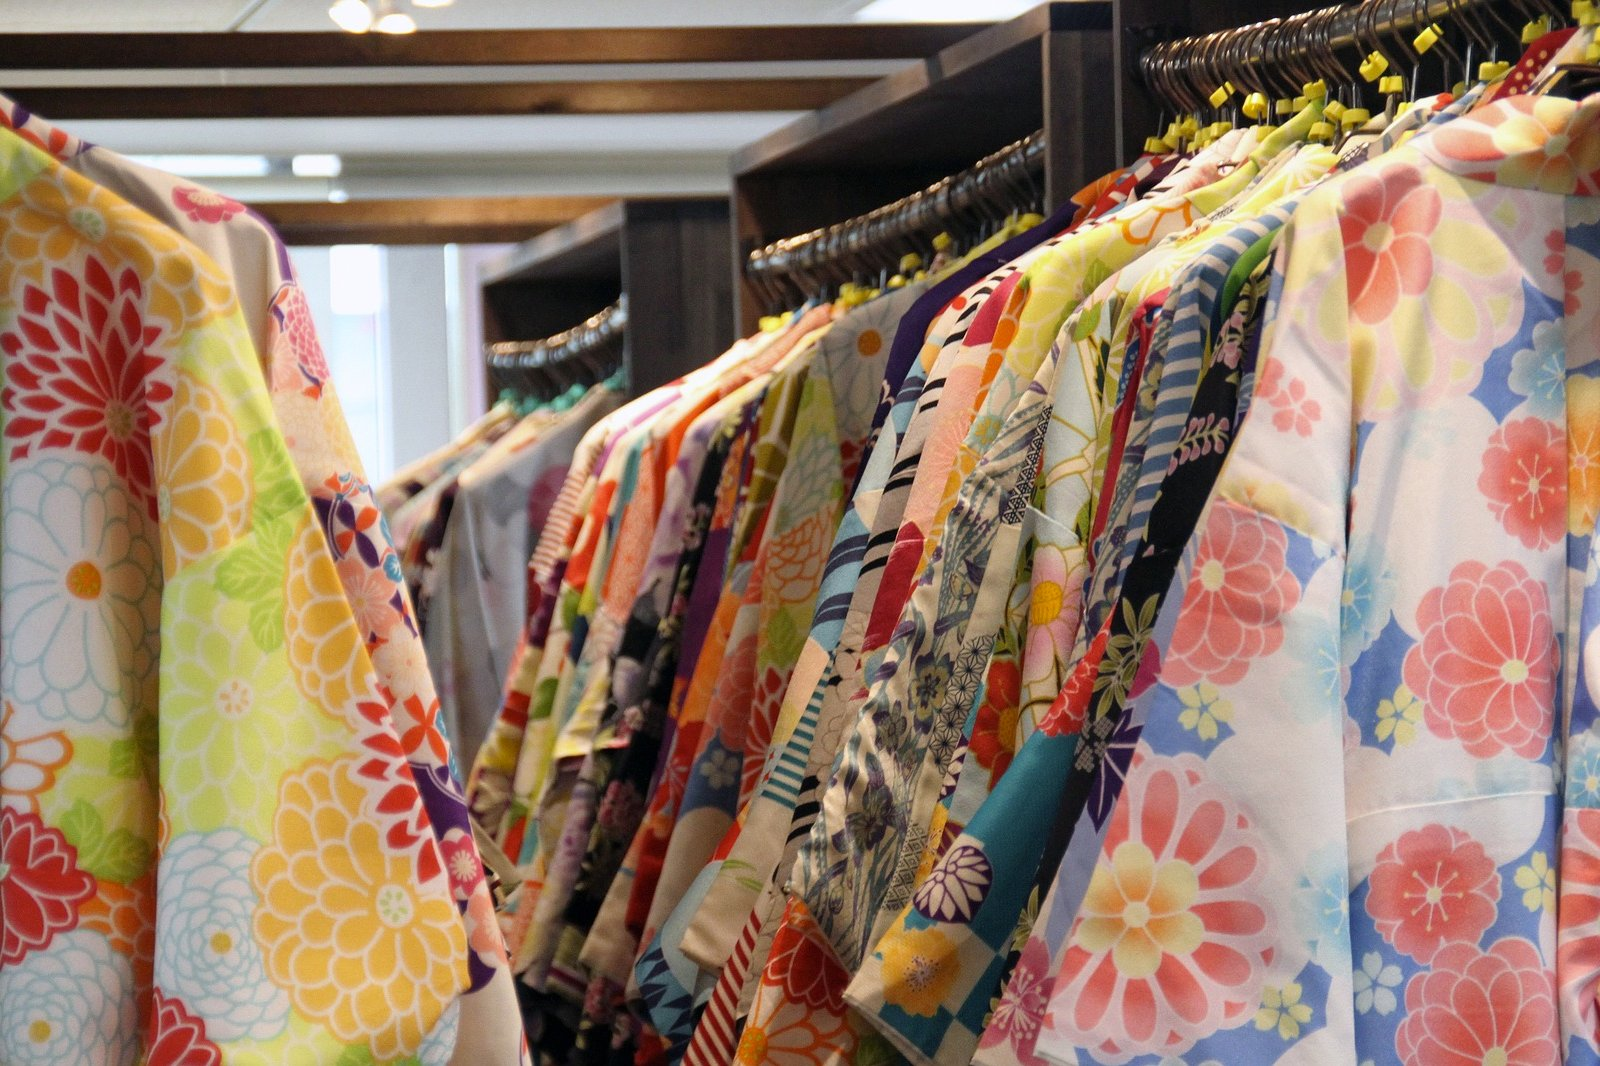 35c3a3e04a0 48 Best Shopping Experiences in Tokyo - Where to Shop and what to ...